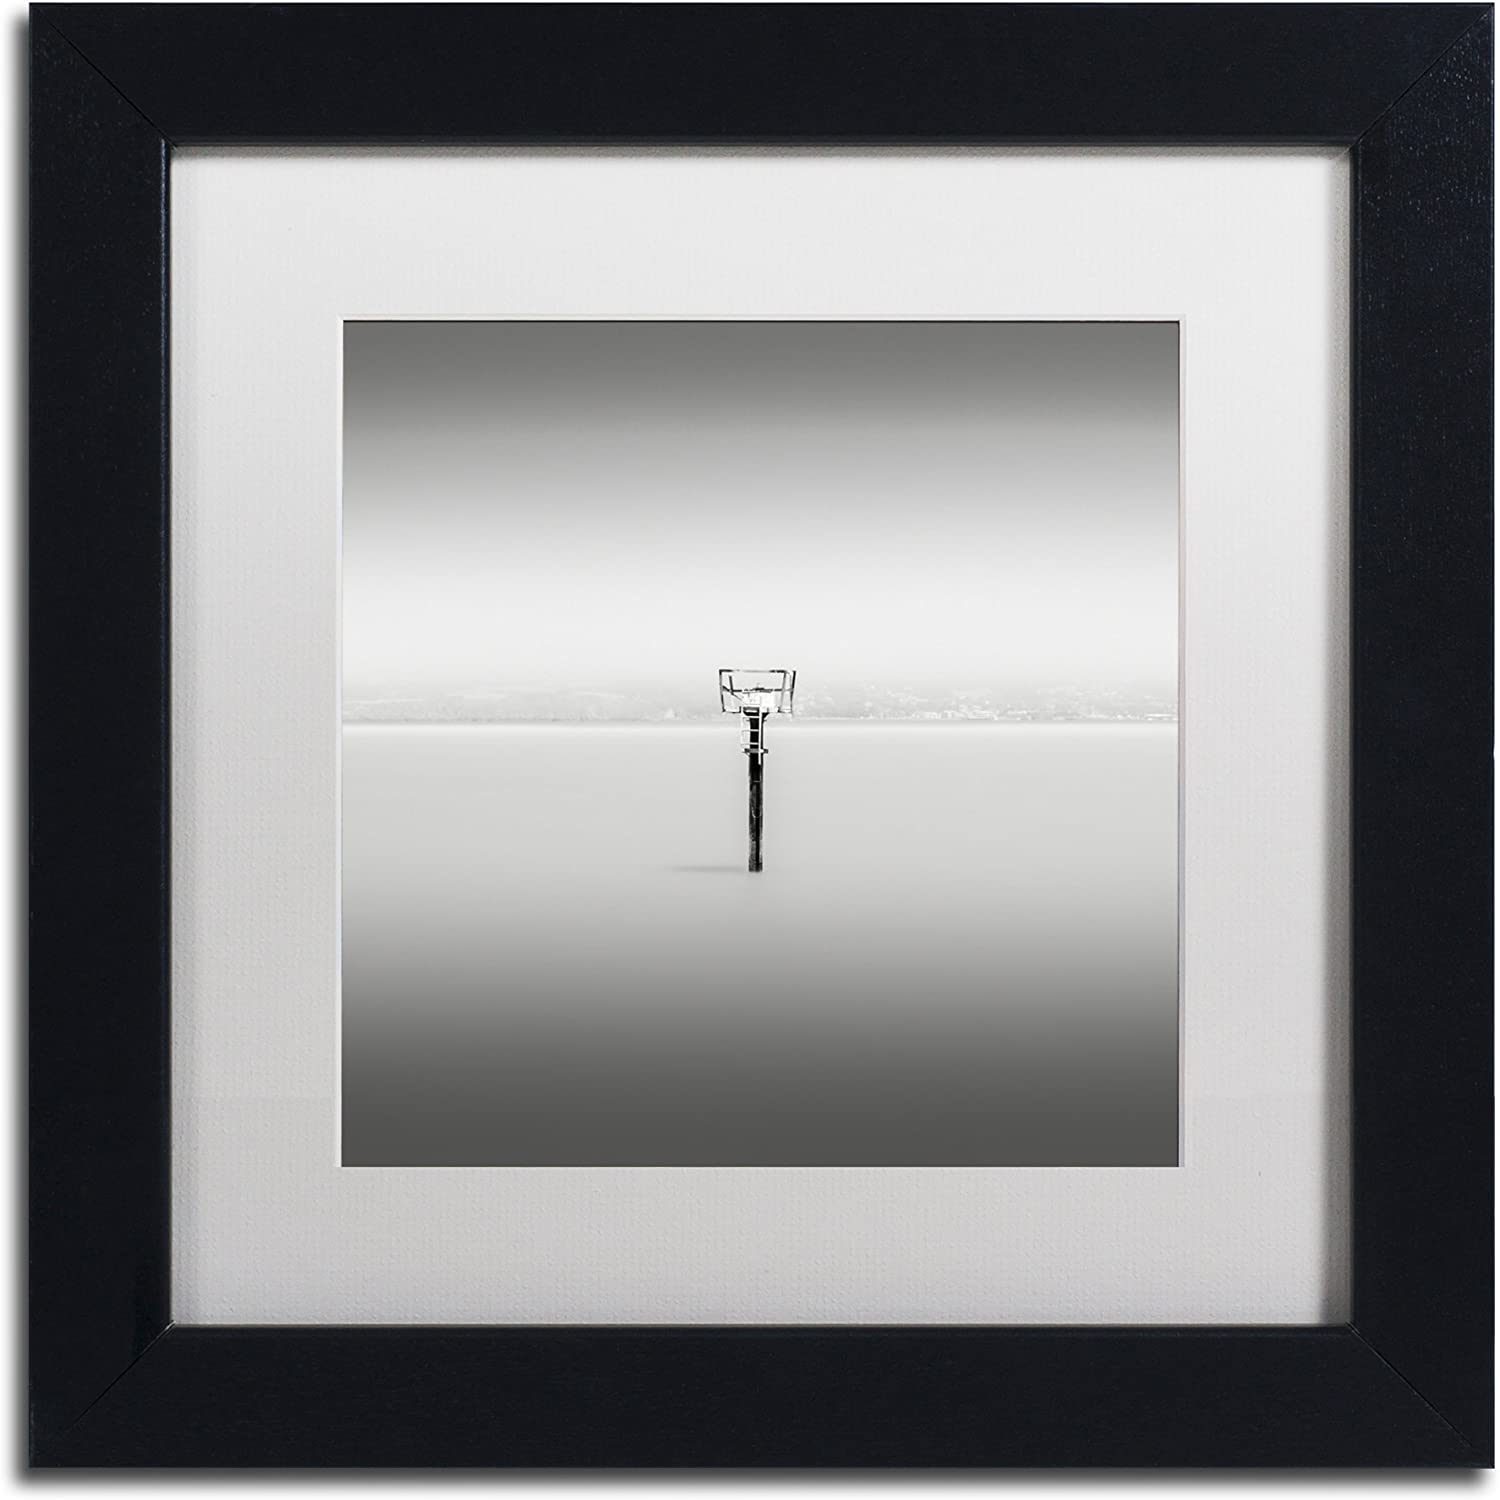 Trademark Fine Art Isolation by Dave MacVicar Frame, 11 by 11Inch, White Matte